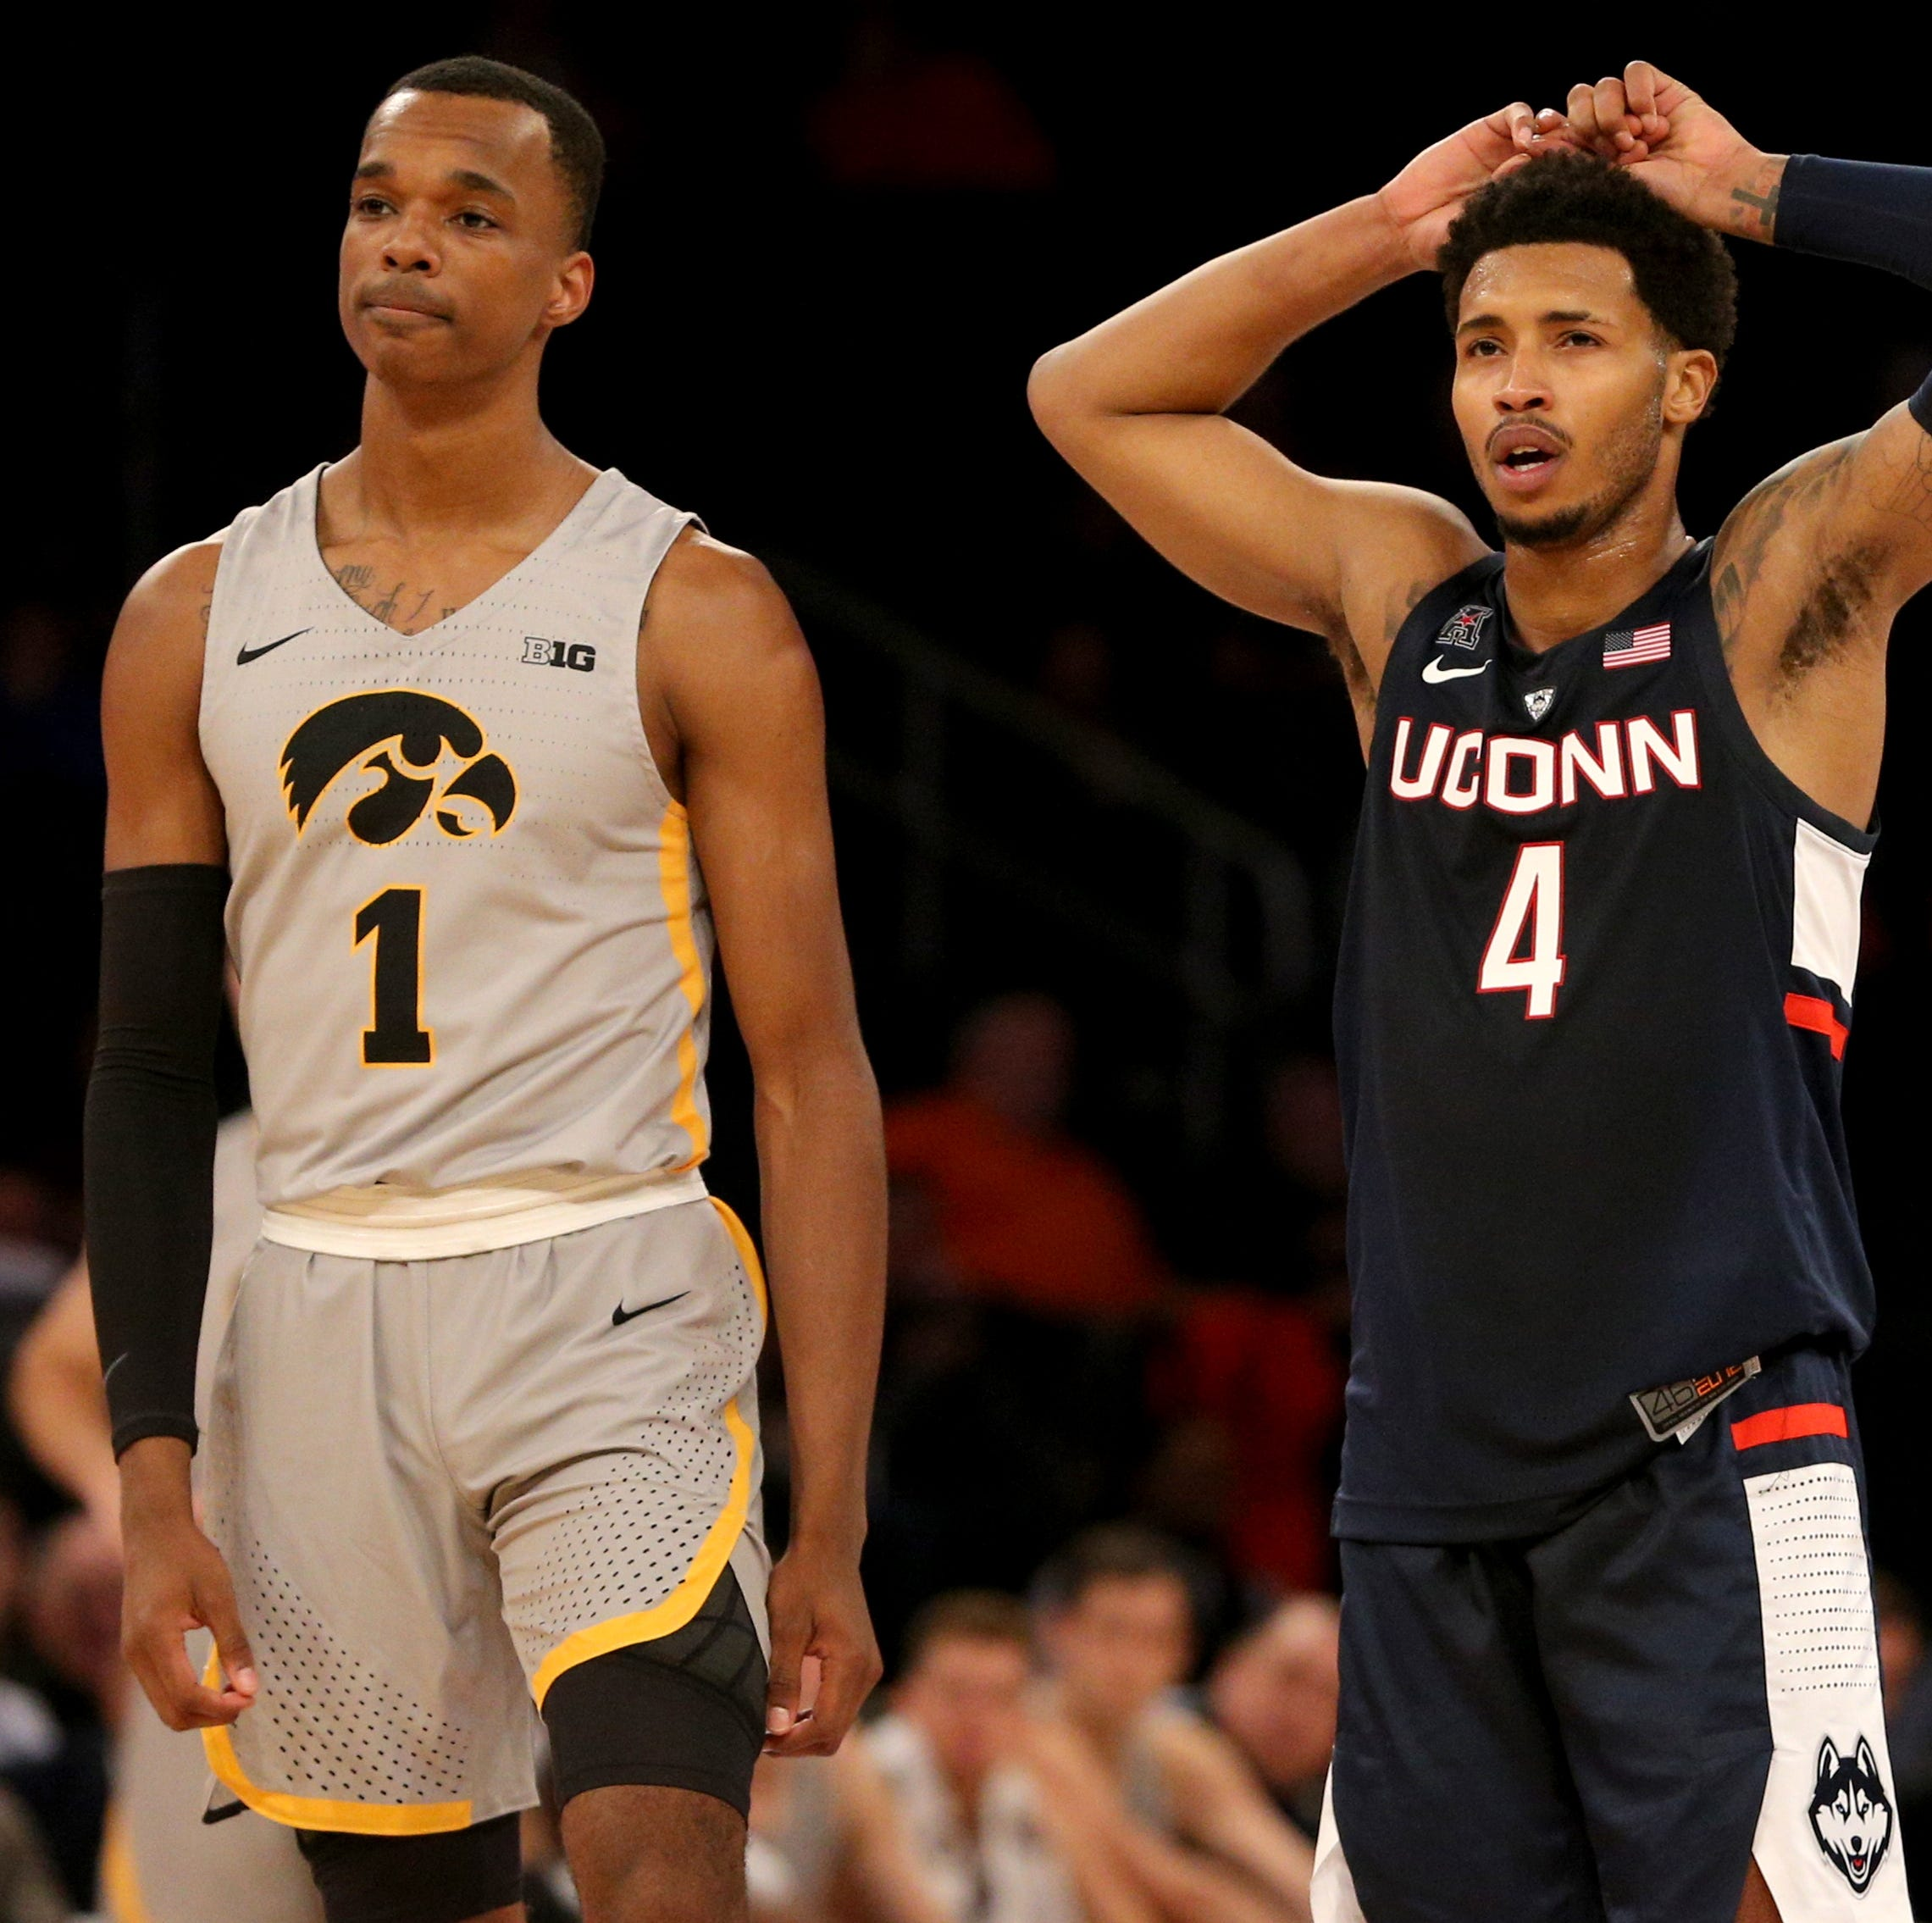 Nov 16, 2018; New York, NY, USA; Connecticut Huskies guard Jalen Adams (4) reacts next to Iowa Hawkeyes guard Maishe Dailey (1) during the first half at Madison Square Garden. Mandatory Credit: Brad Penner-USA TODAY Sports